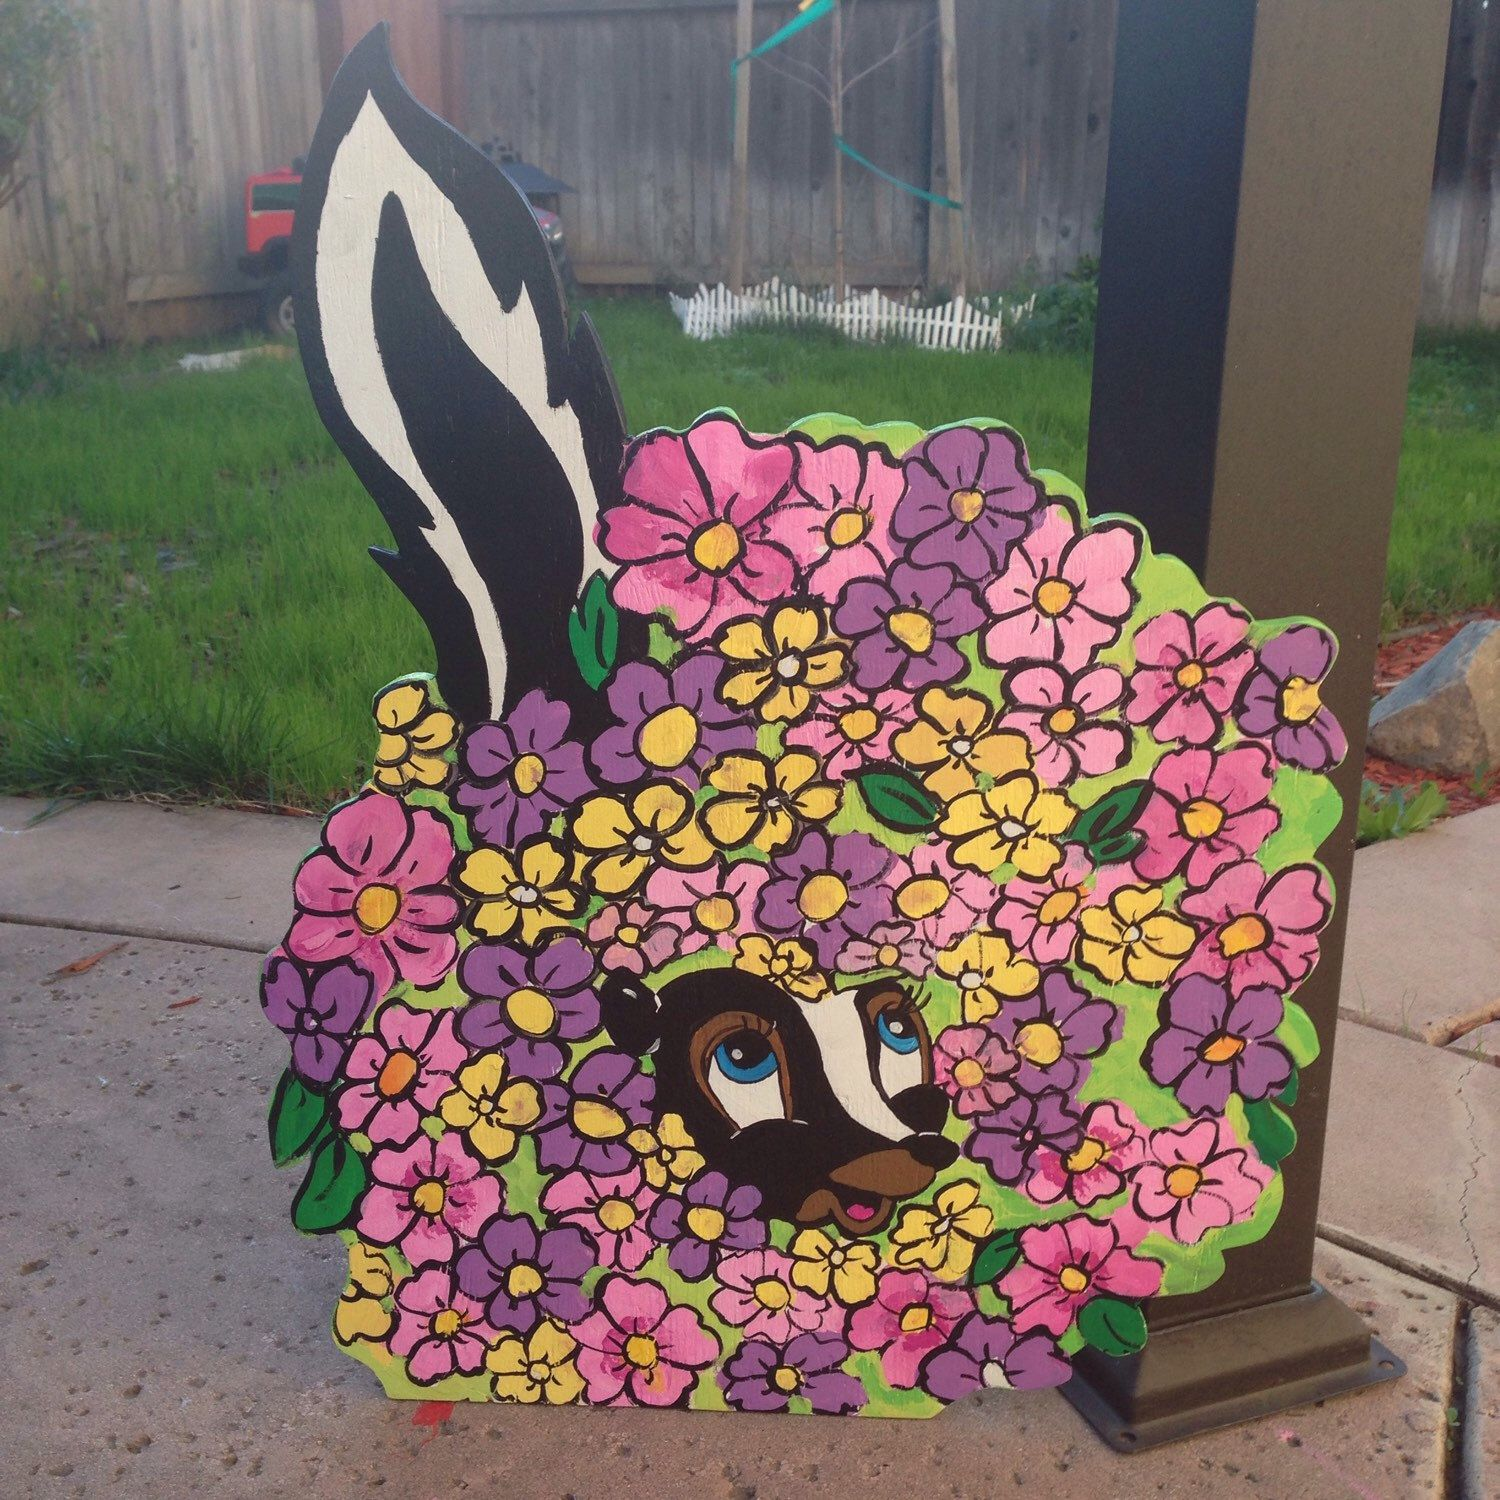 Wood yard decorations - Adorable Wooden Cutout Of Flower The Skunk From Bambi By Befestiveyardart On Etsy Https